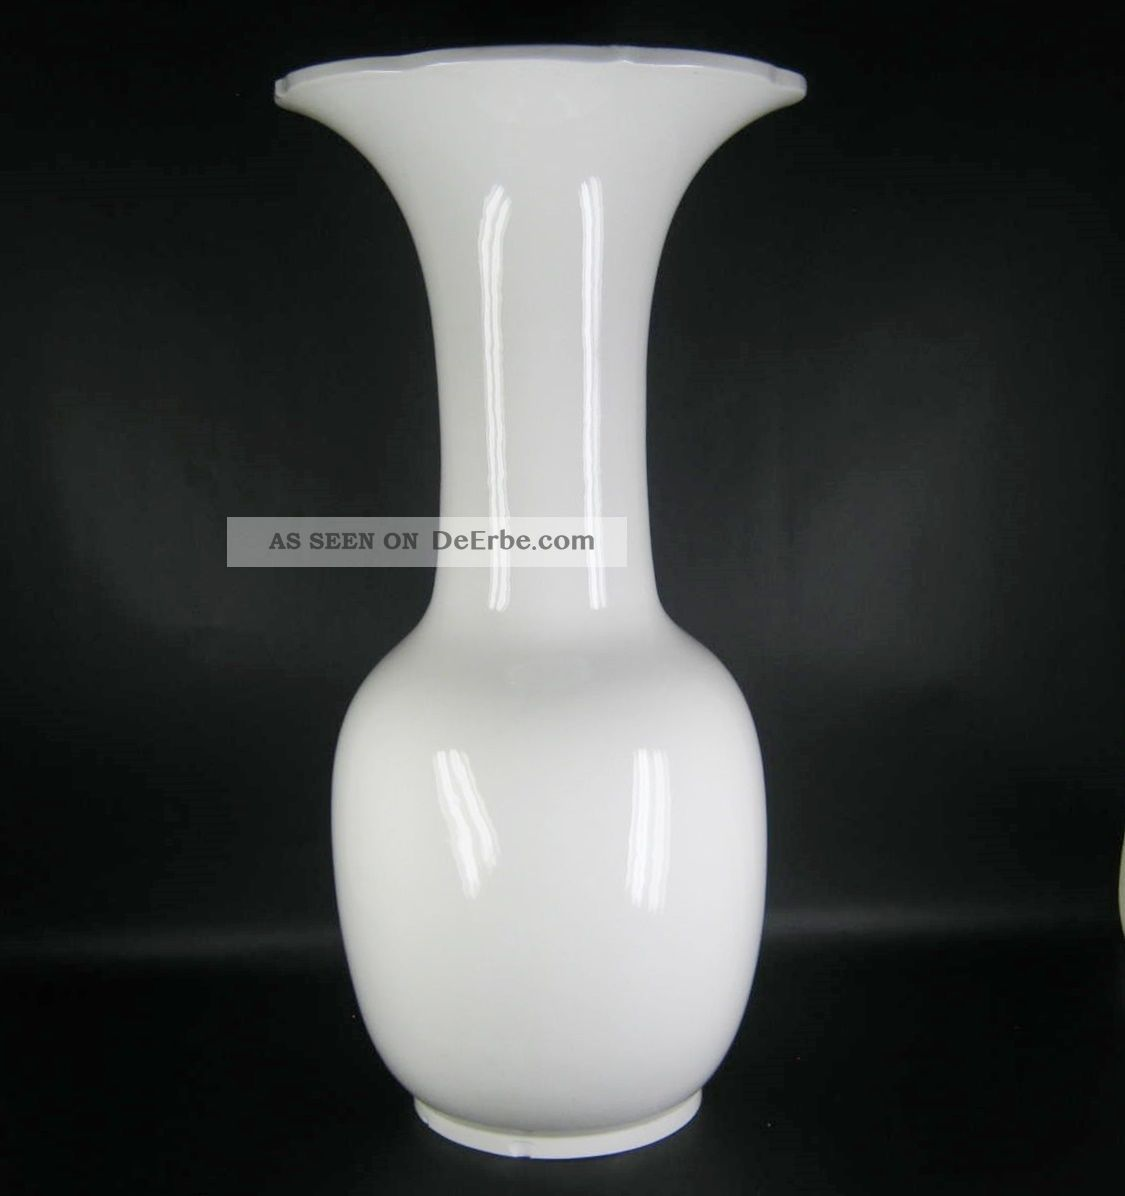 seltene kpm berlin porzellan vase bodenvase weiss 1 wahl floor vase 57cm. Black Bedroom Furniture Sets. Home Design Ideas